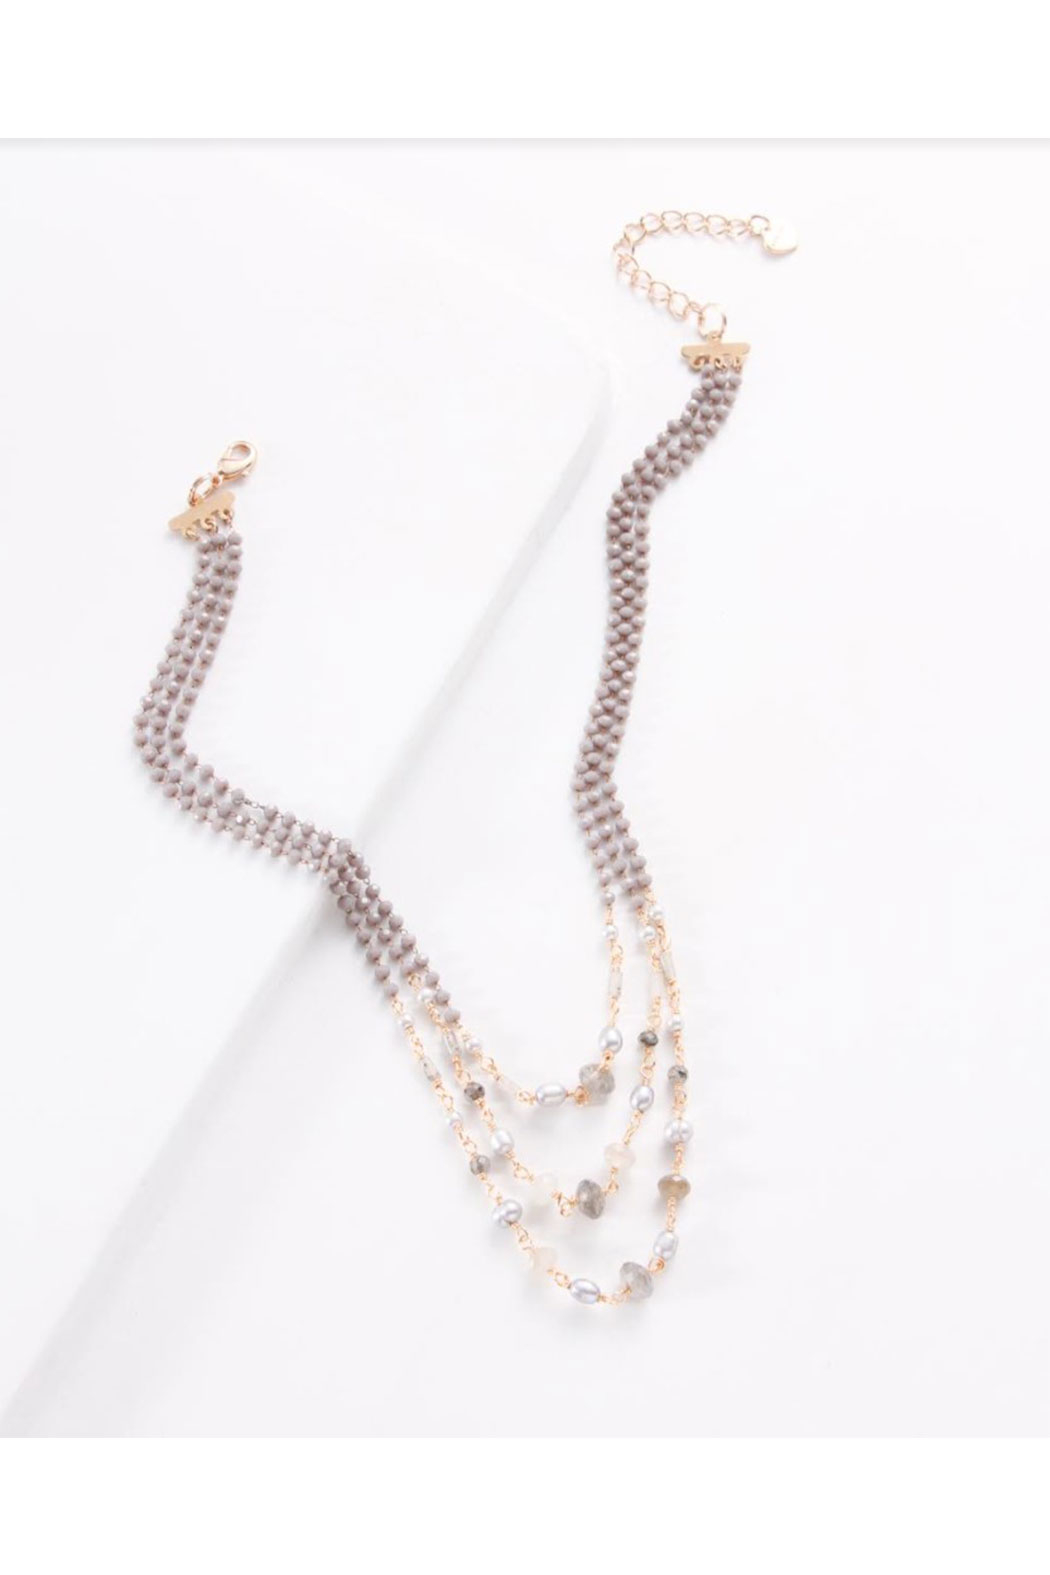 Maison A Triple Strand Necklace w/ Pearls - Main Image